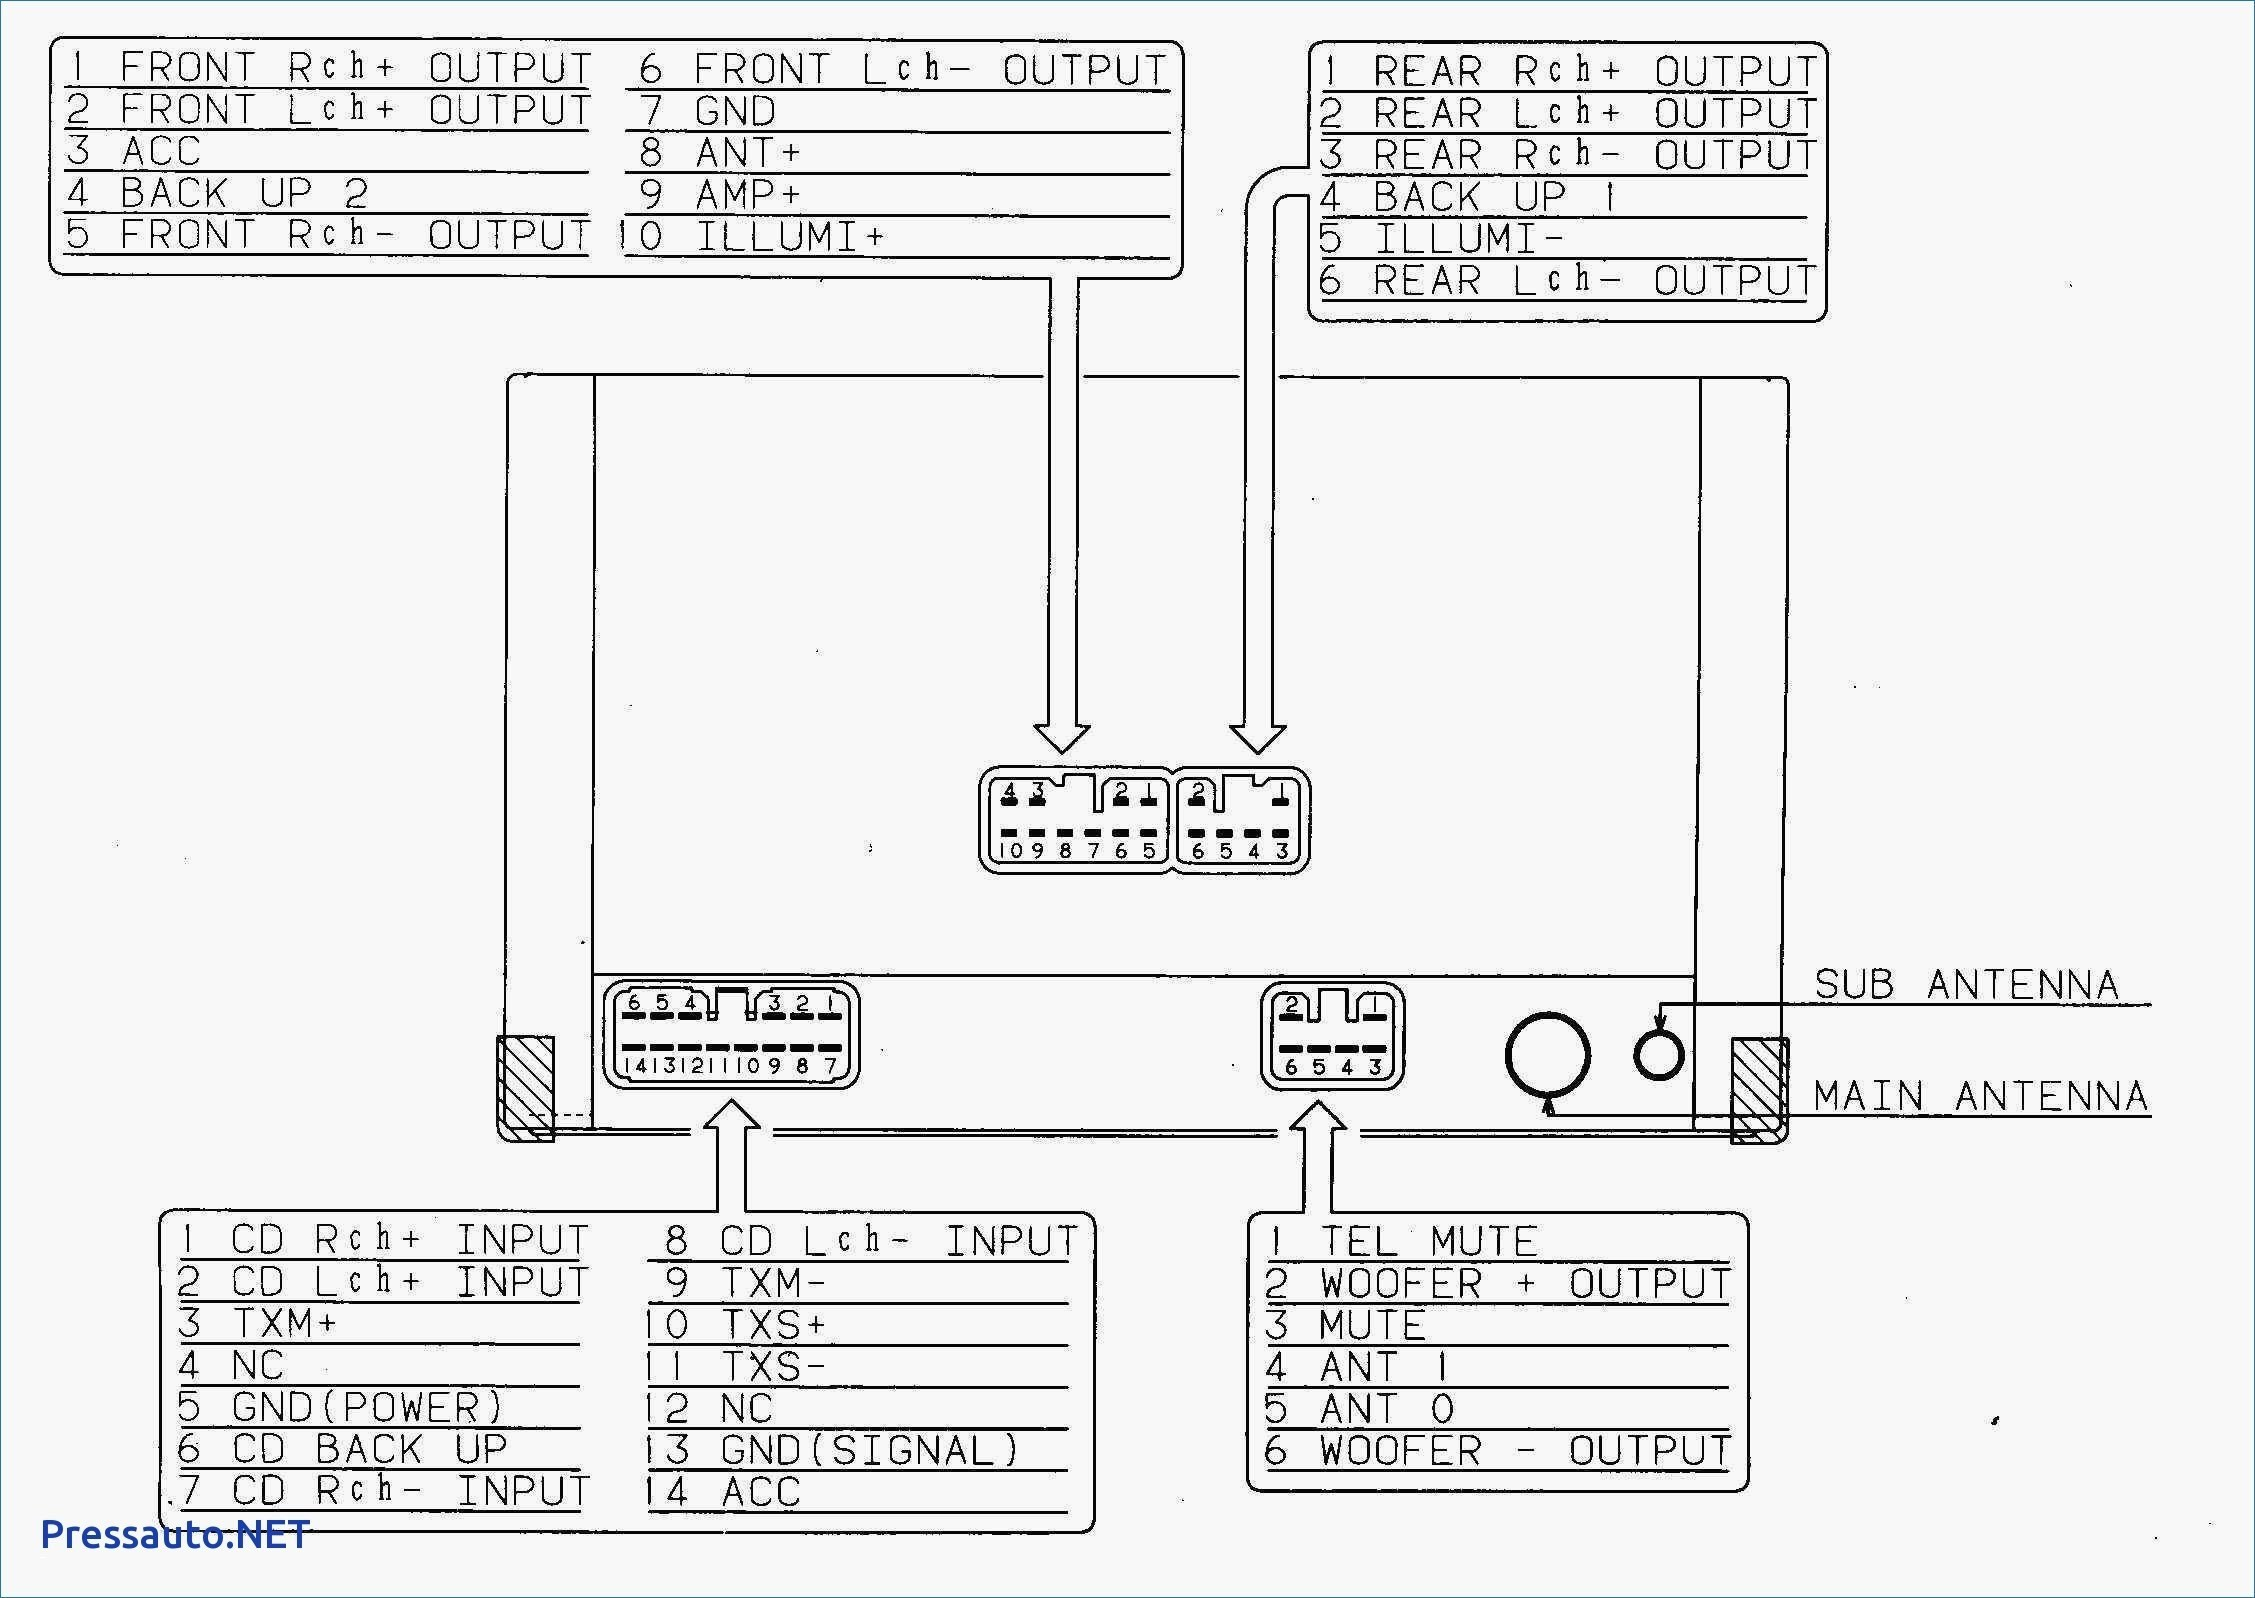 Sony Wiring Diagram Car Stereo Wiring Diagram for sony Xplod Car Stereo Valid Car Stereo Wiring Of Sony Wiring Diagram Car Stereo